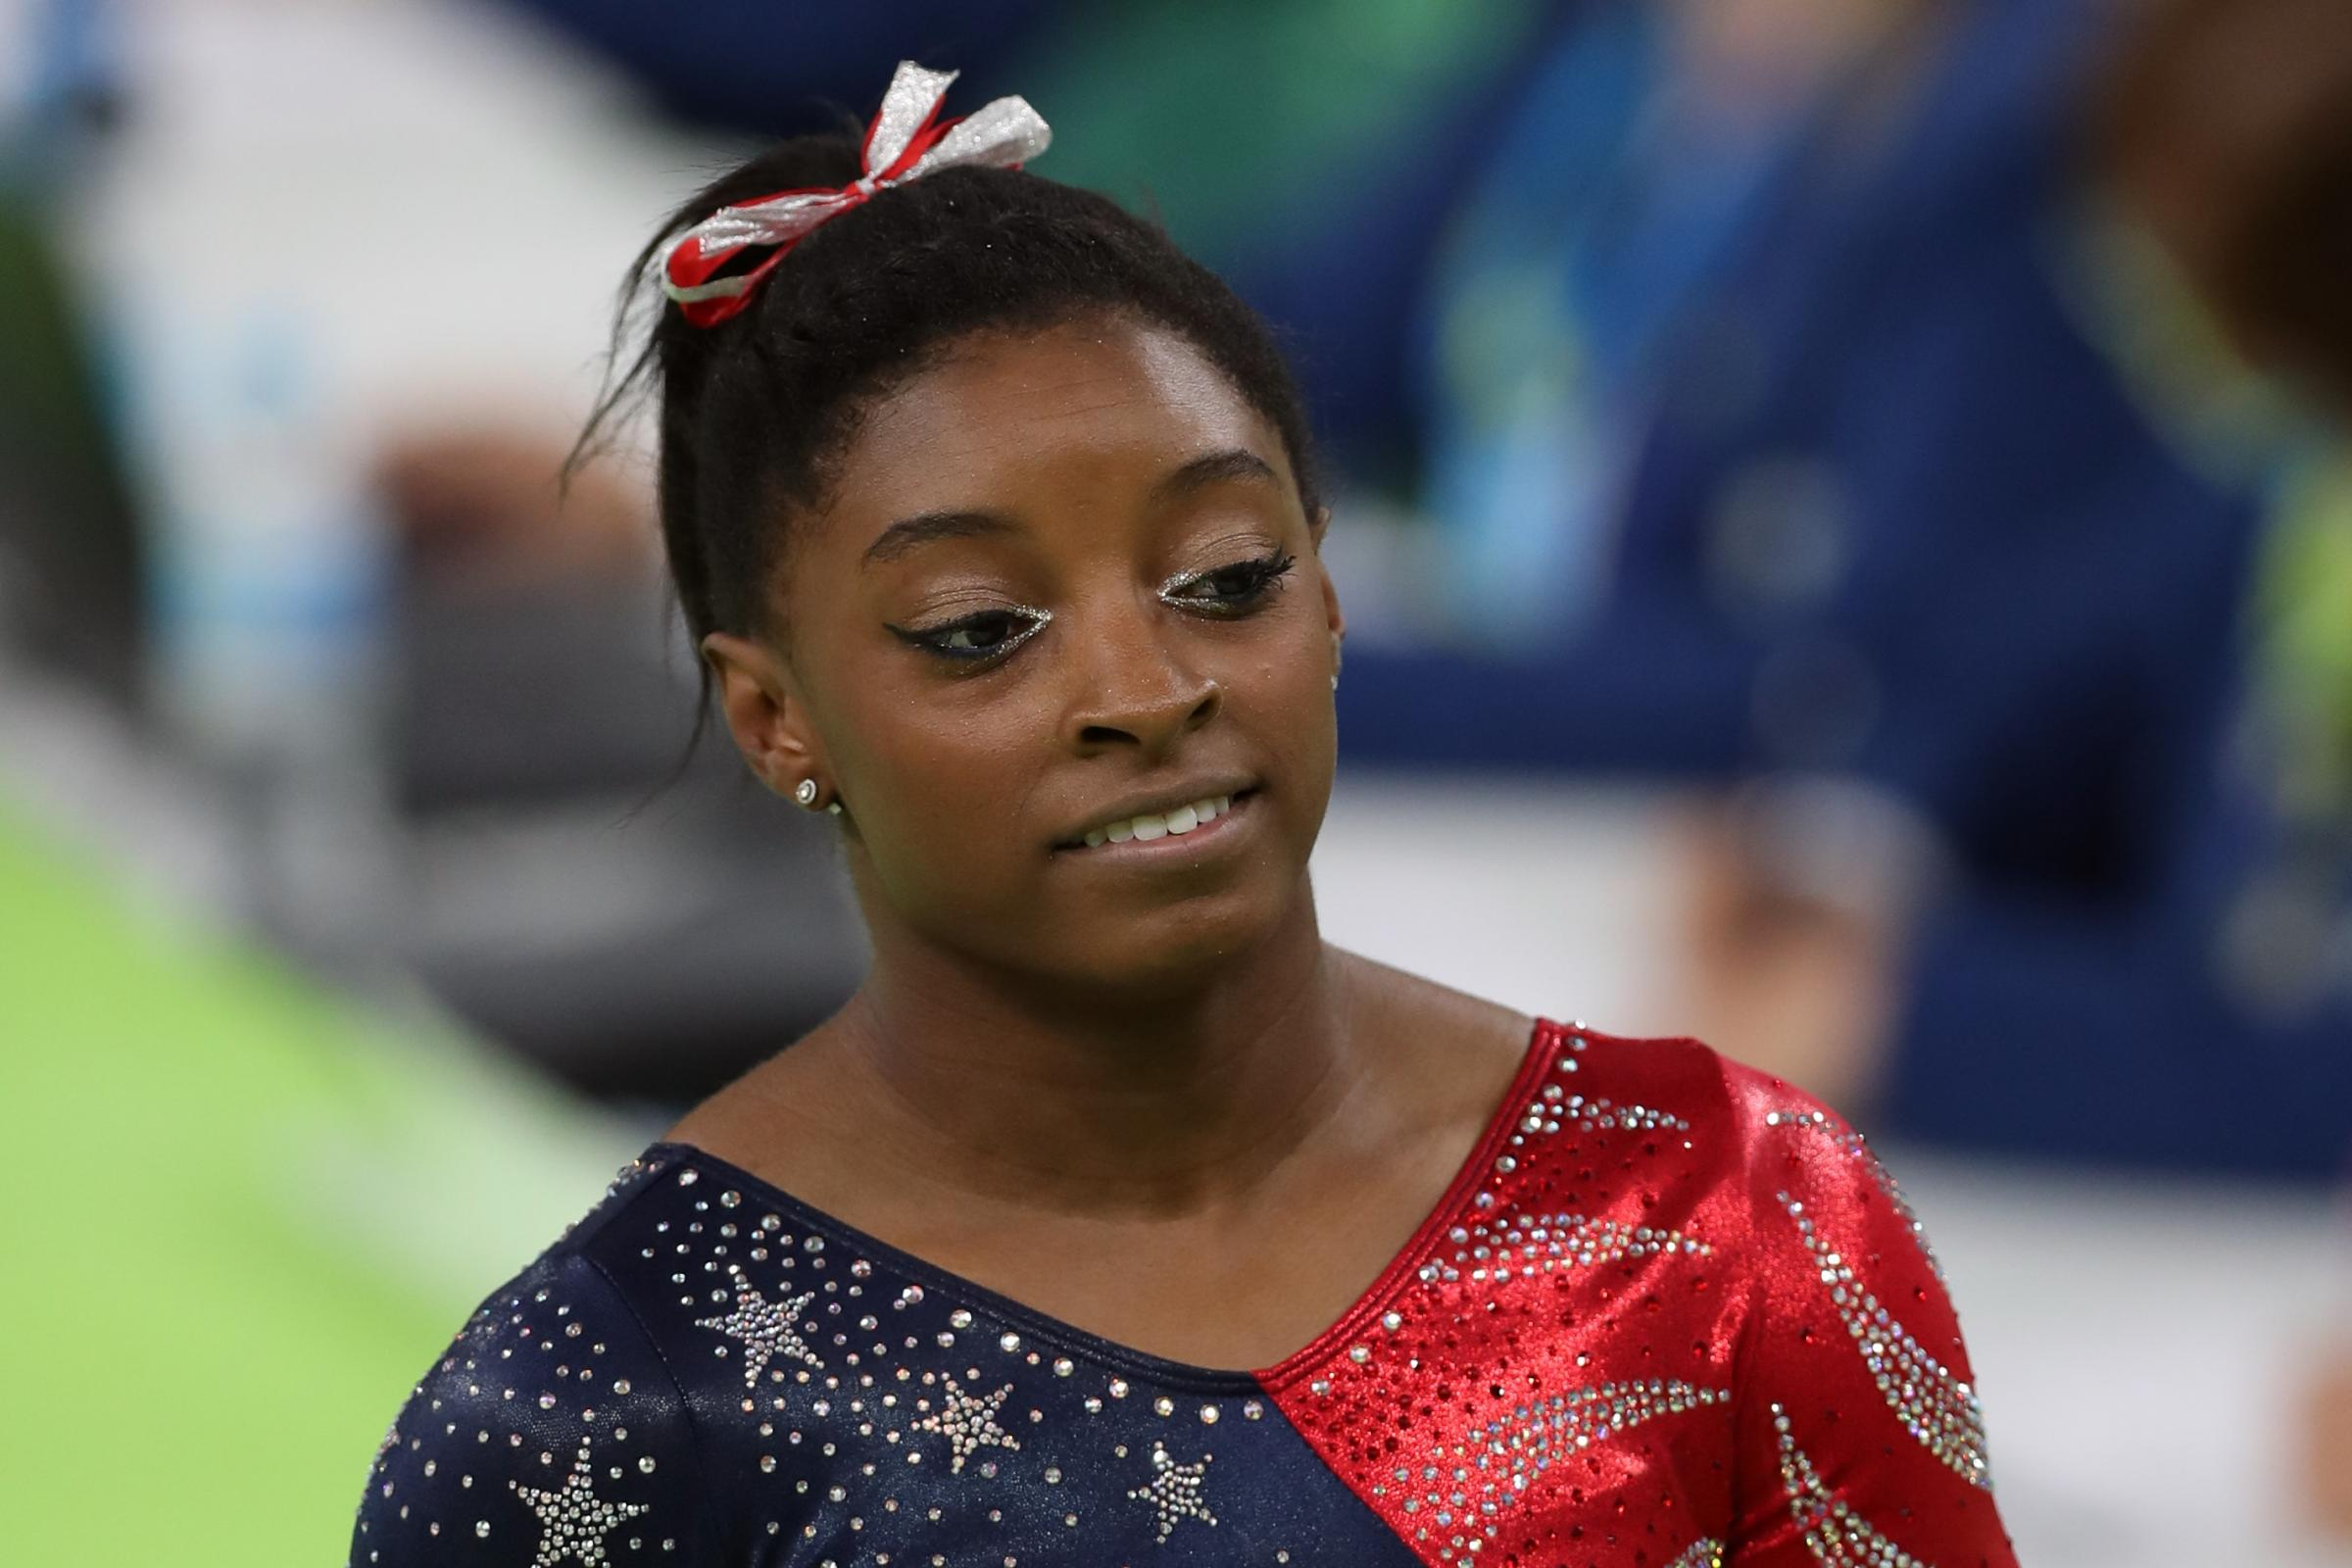 Simone Biles is one of the gymnasts who has accused Larry Nassar of abuse